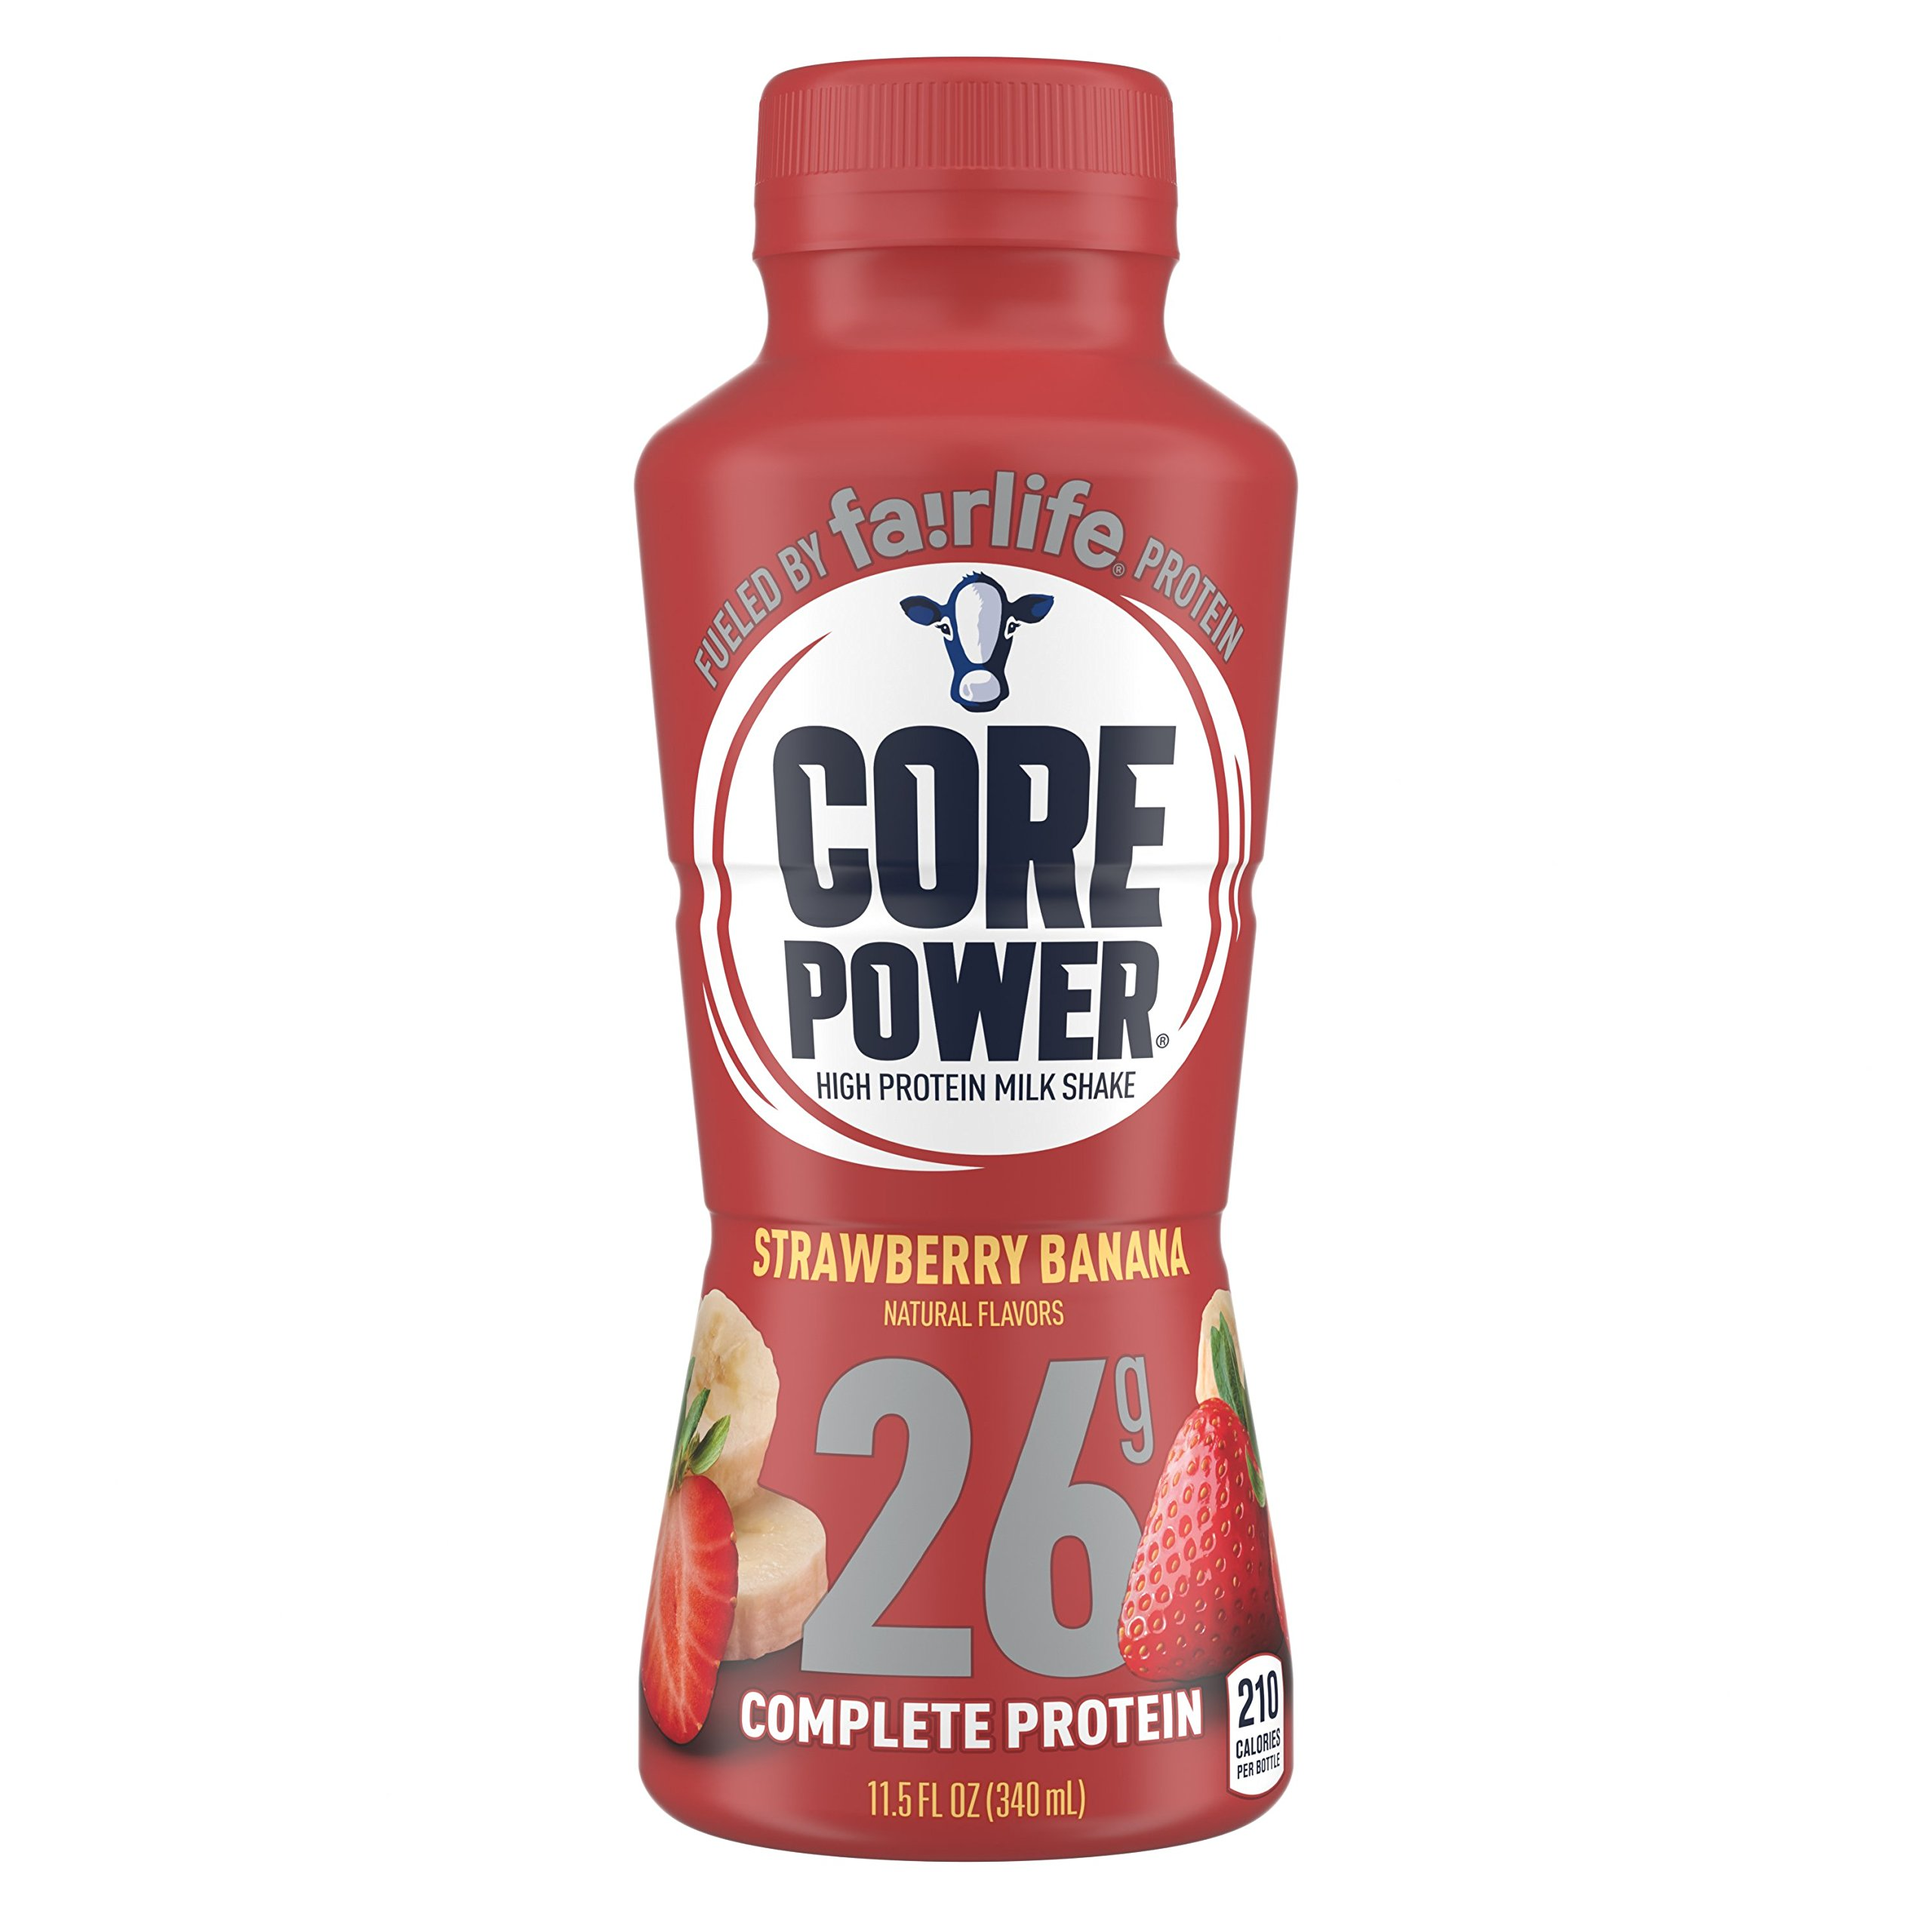 fairlife Core Power High Protein (26g) Milk Shake, Strawberry Banana (Packaging May Vary), 11.5-ounce bottles (pack of 12)